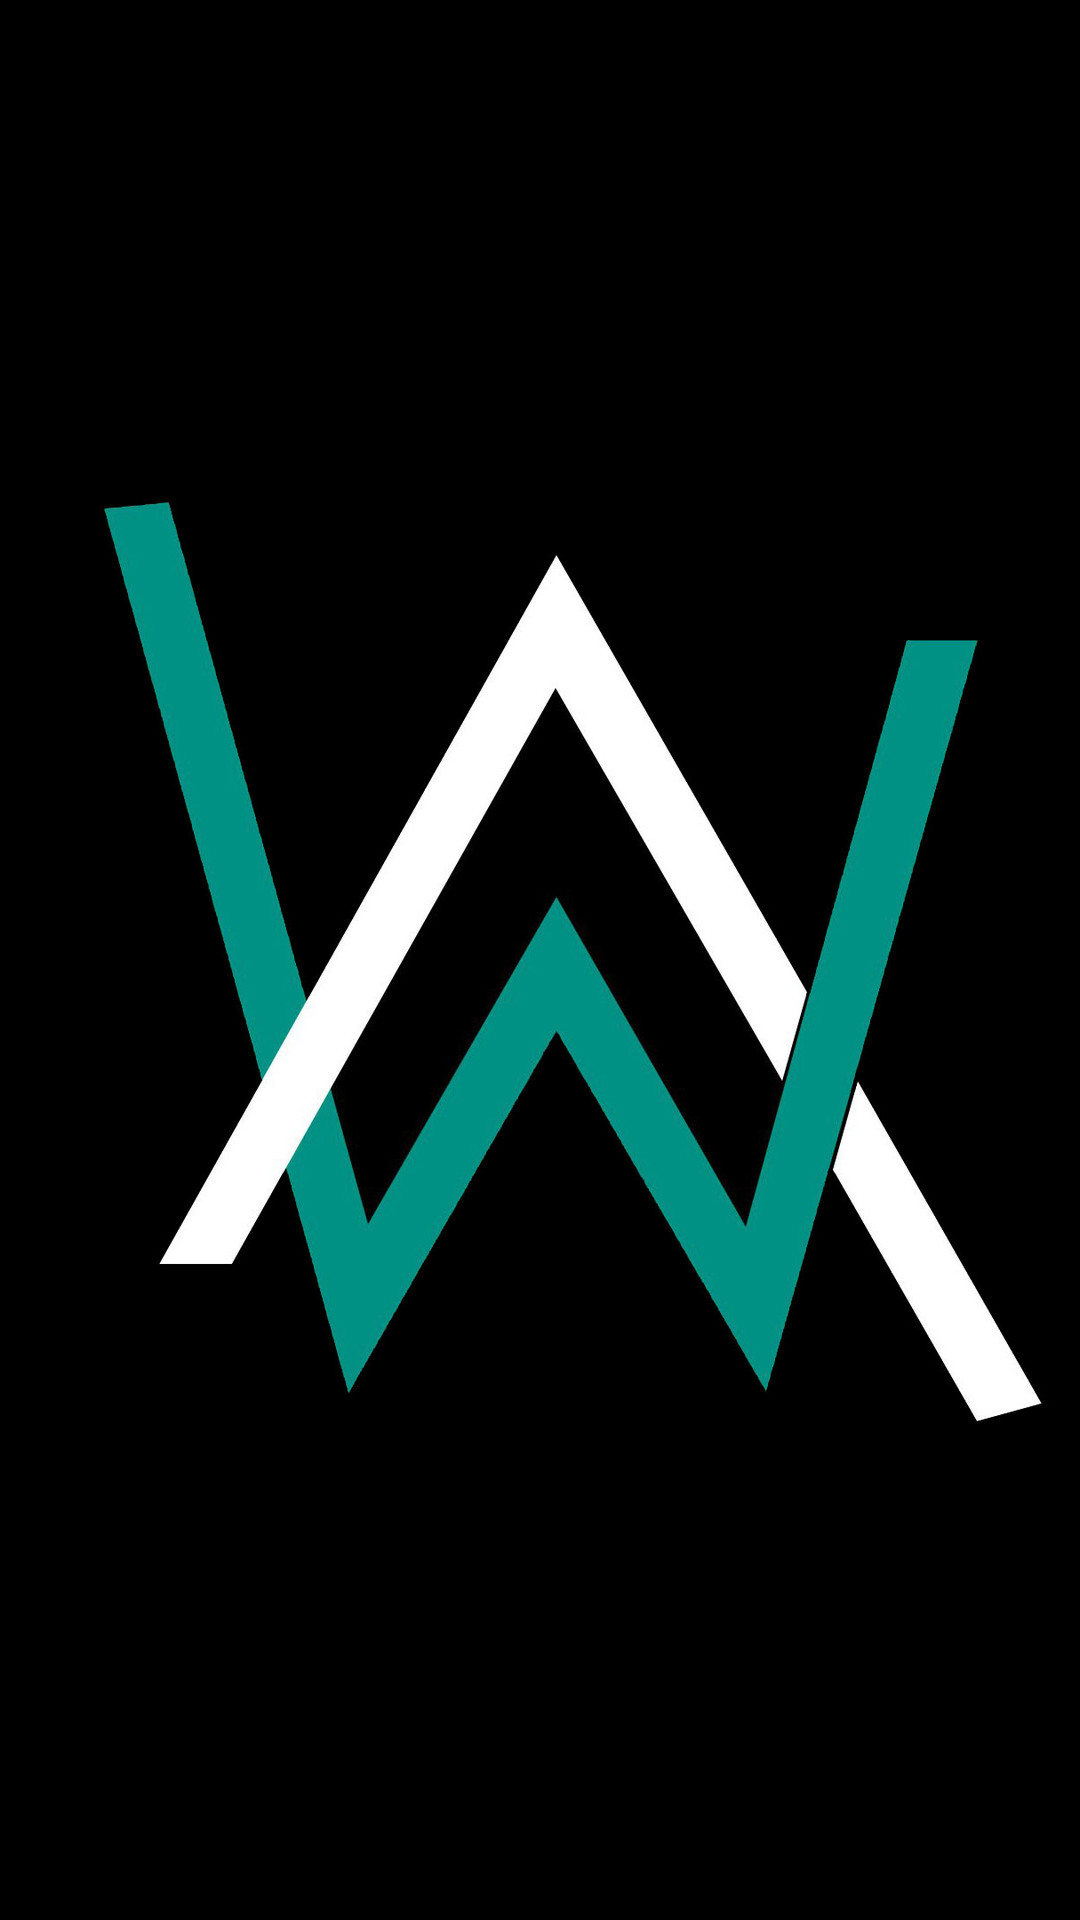 Alan walker logo qhd wallpaper 1080x1920 - Alan walker logo galaxy ...